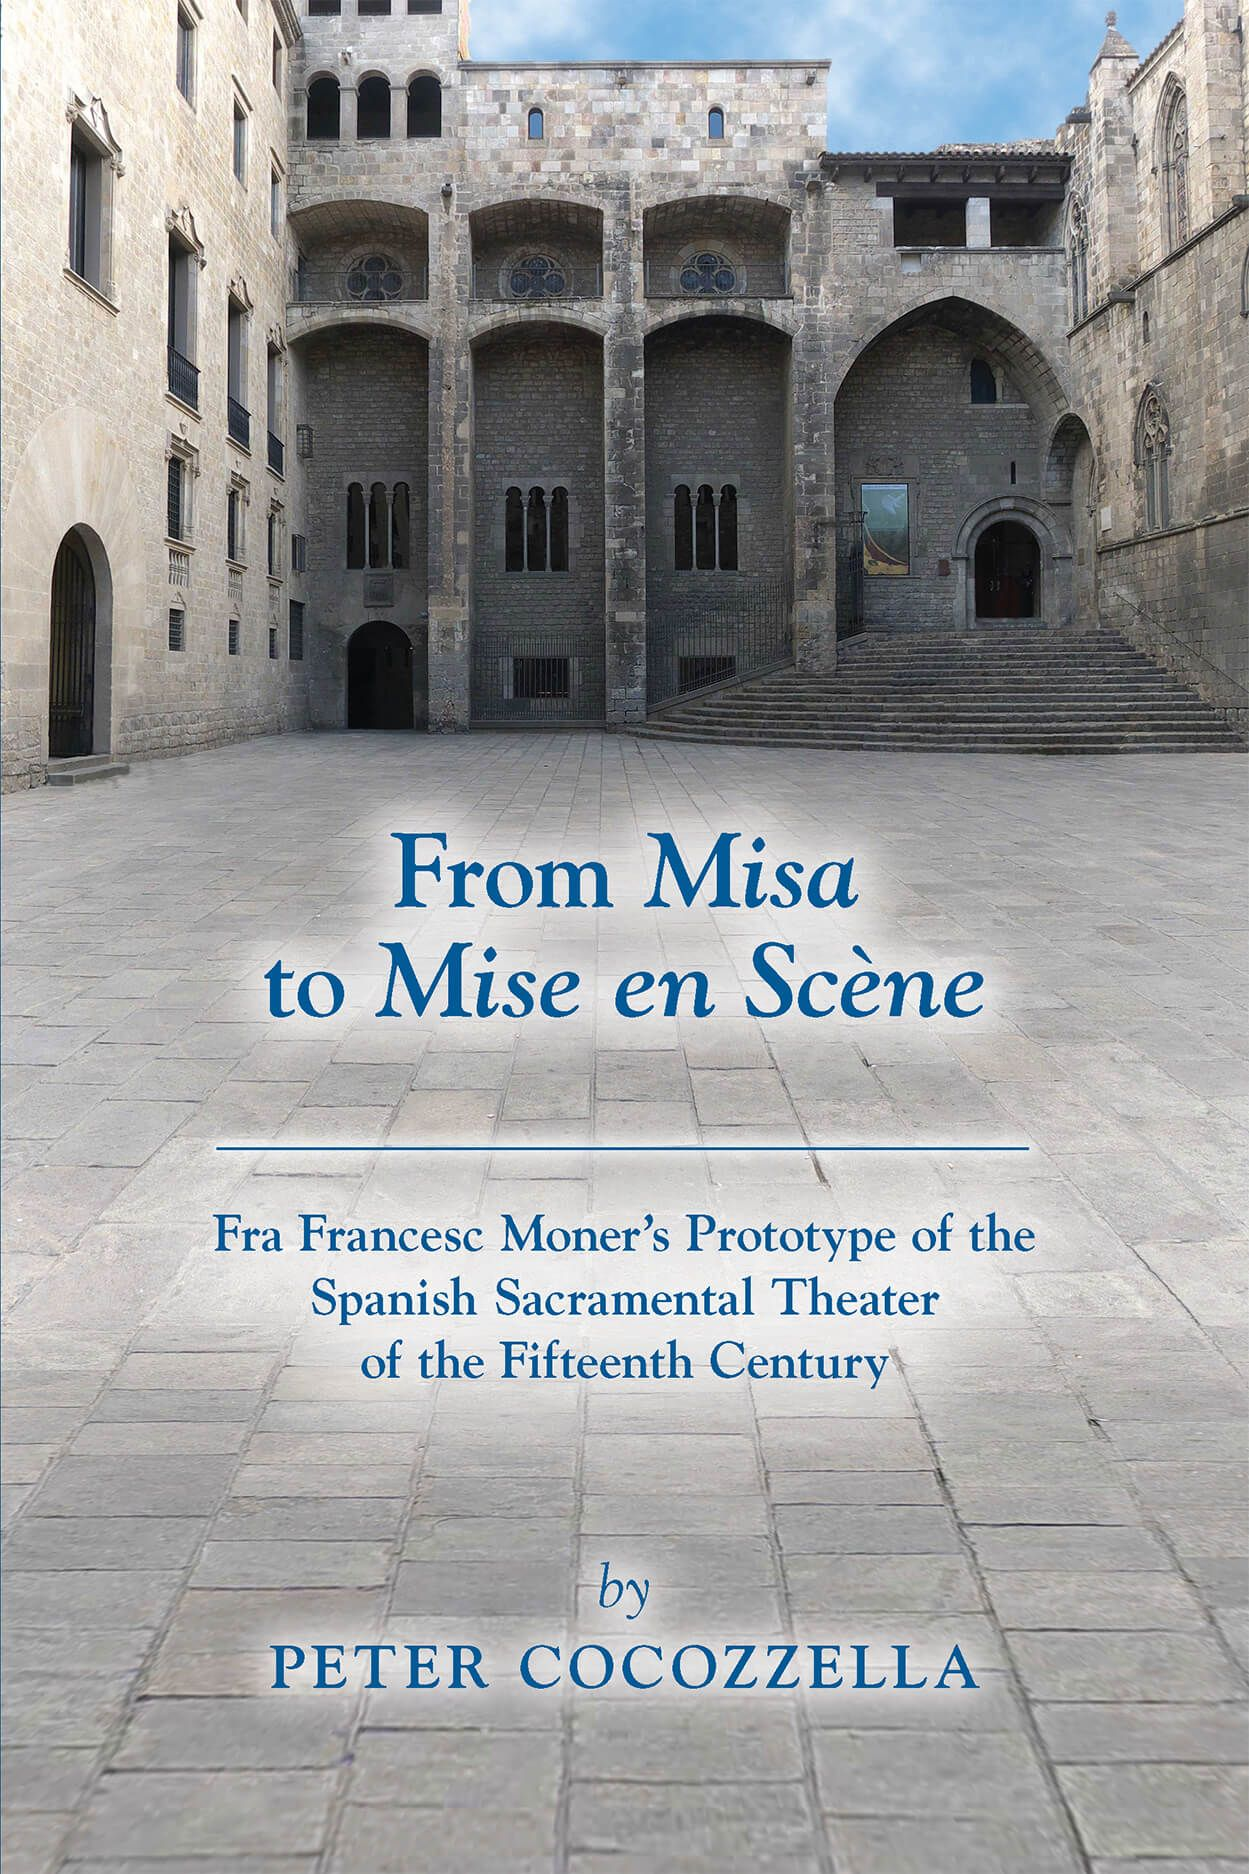 From Misa to Mise en Scène: Fra Francesc Moner's Prototype of the Spanish Sacramental Theater of the Fifteenth Century